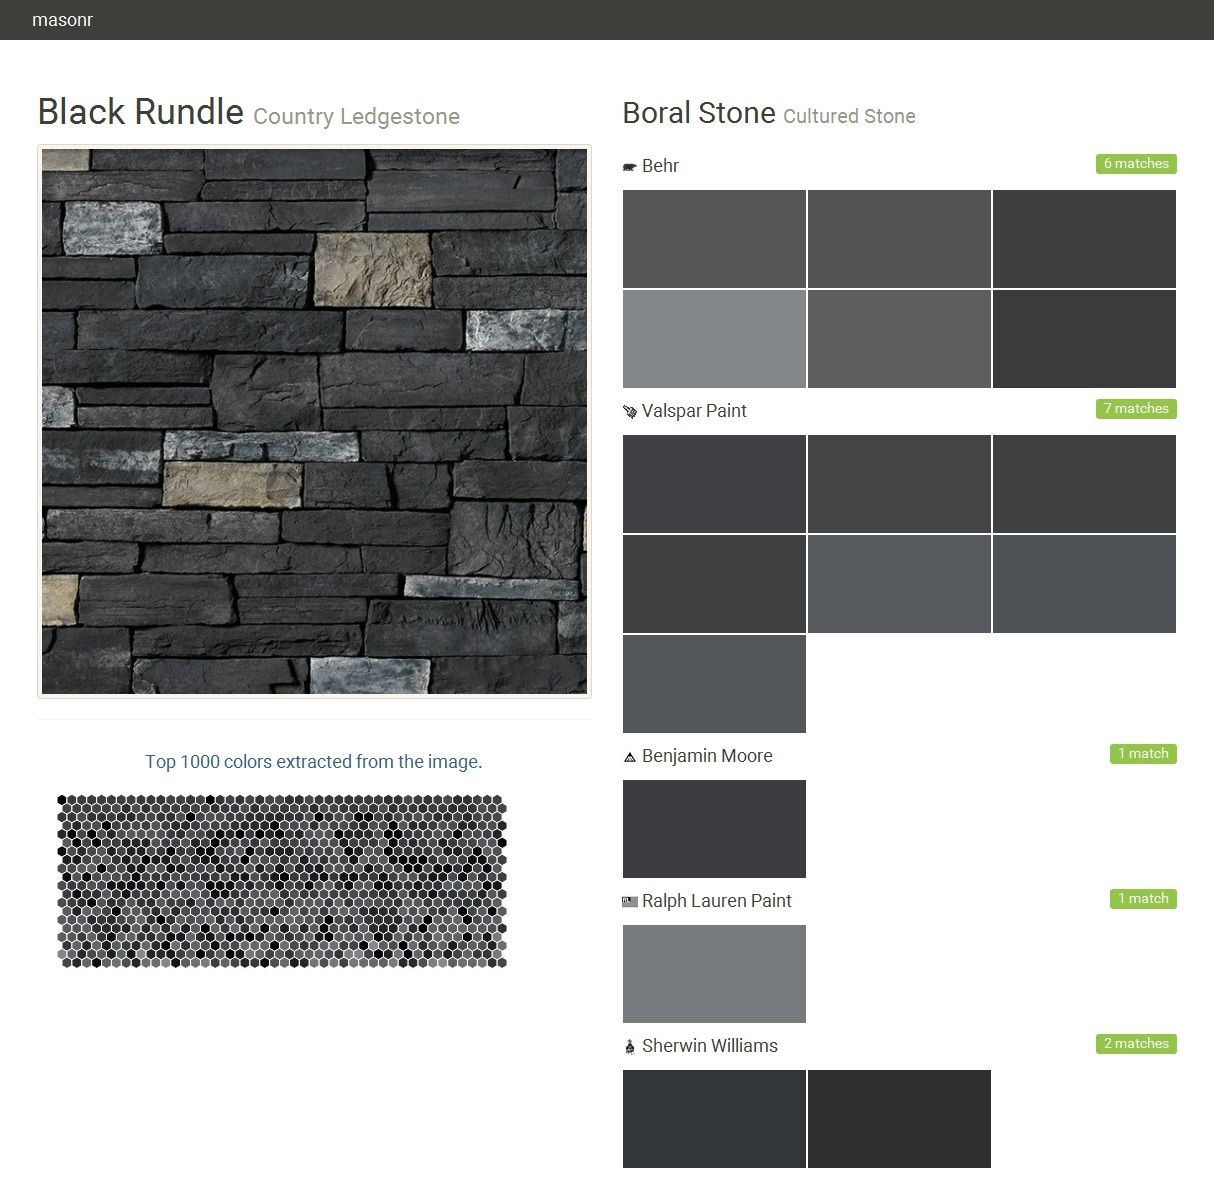 Brick Boral Stone Cultured Stone Black Rundle Boral Stone Brick Exterior House Cultured Stone